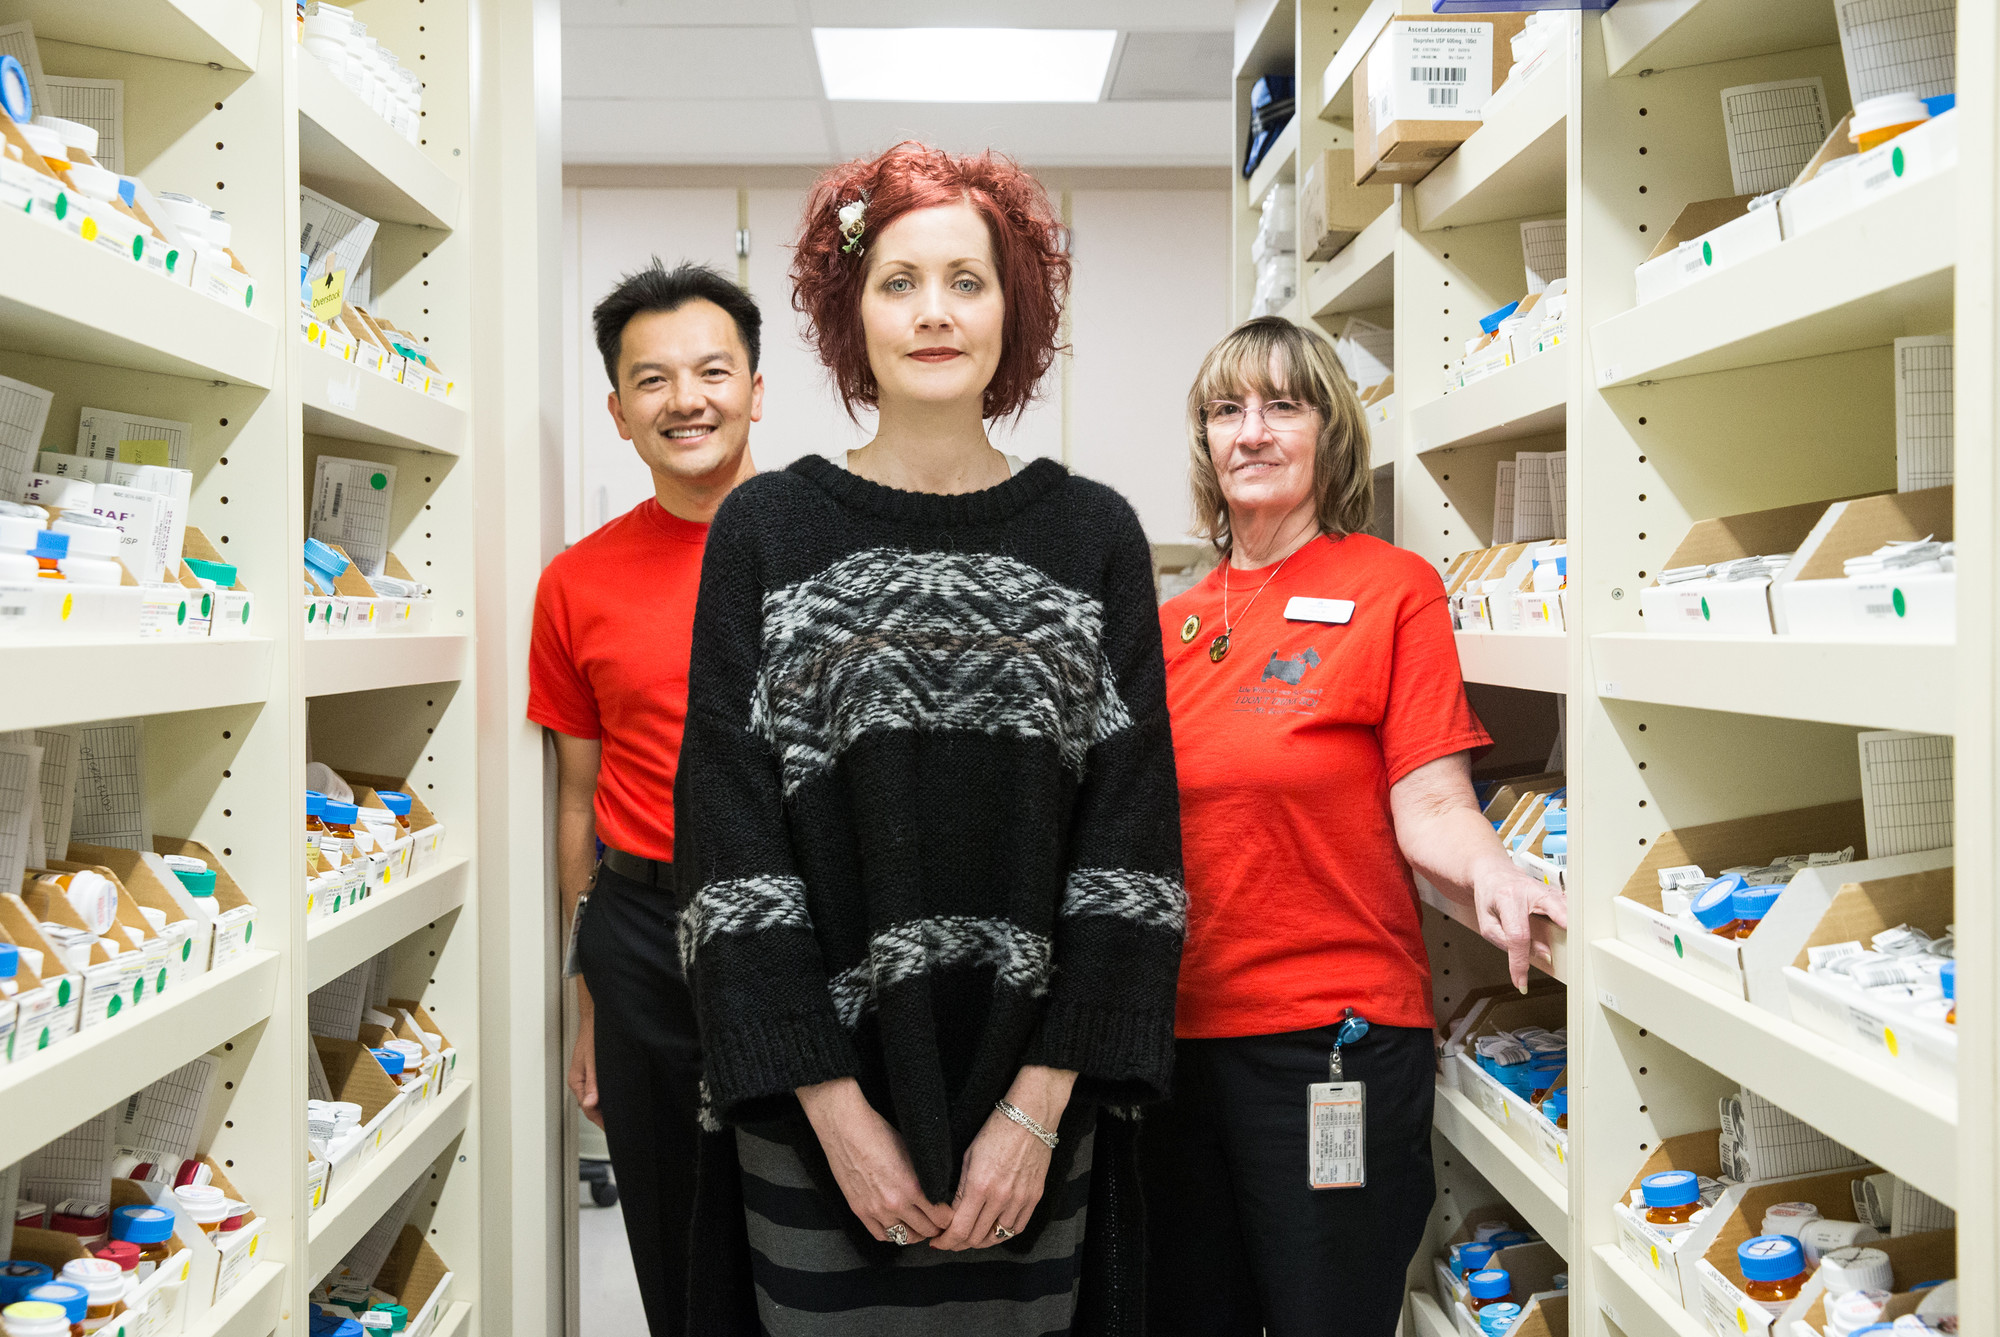 Three people standing amid shelves of pharmacy supplies